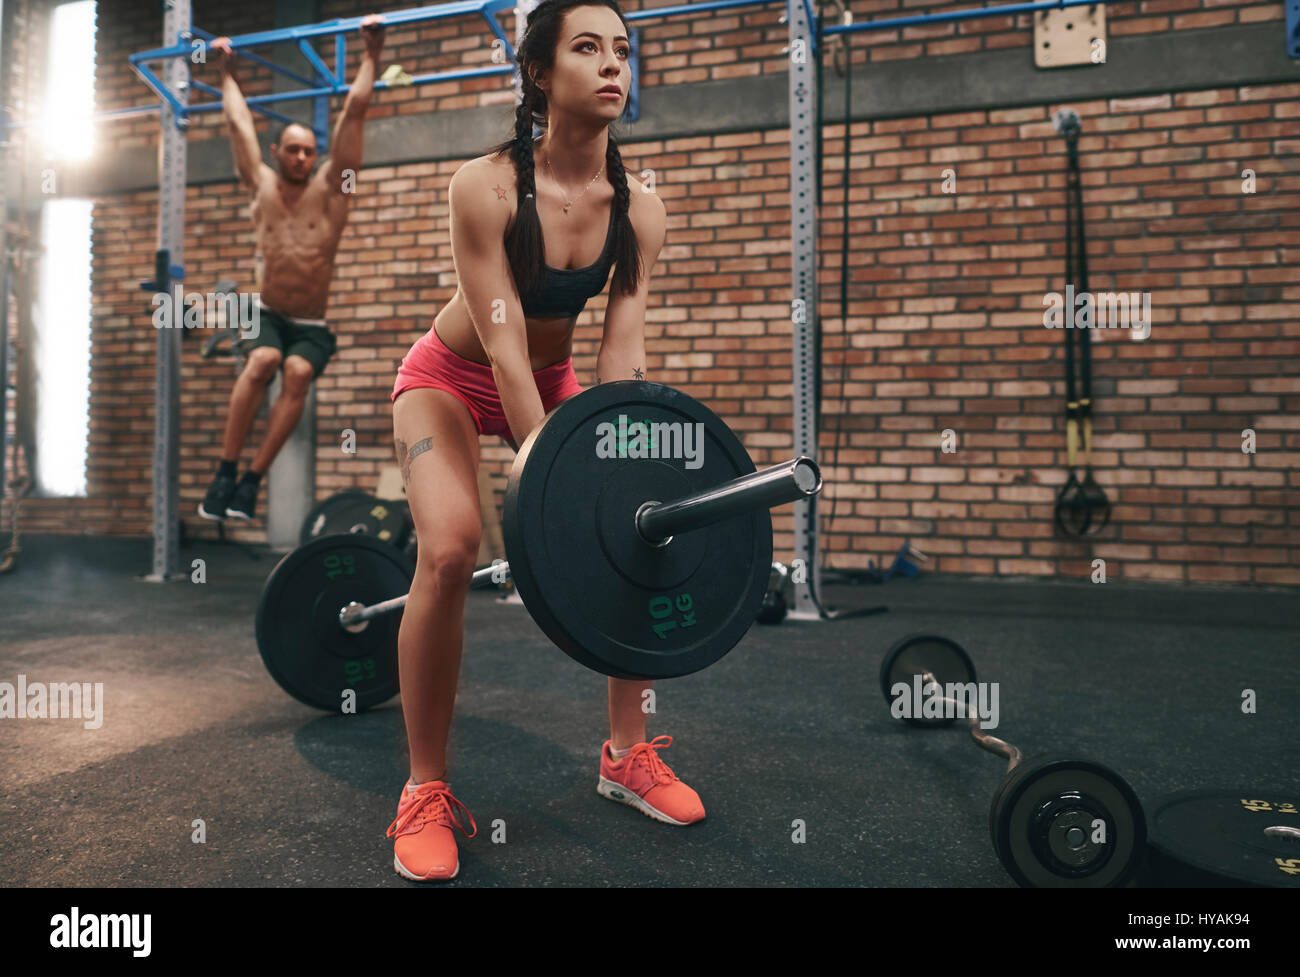 Woman preparing to lift barbell in gym - Stock Image